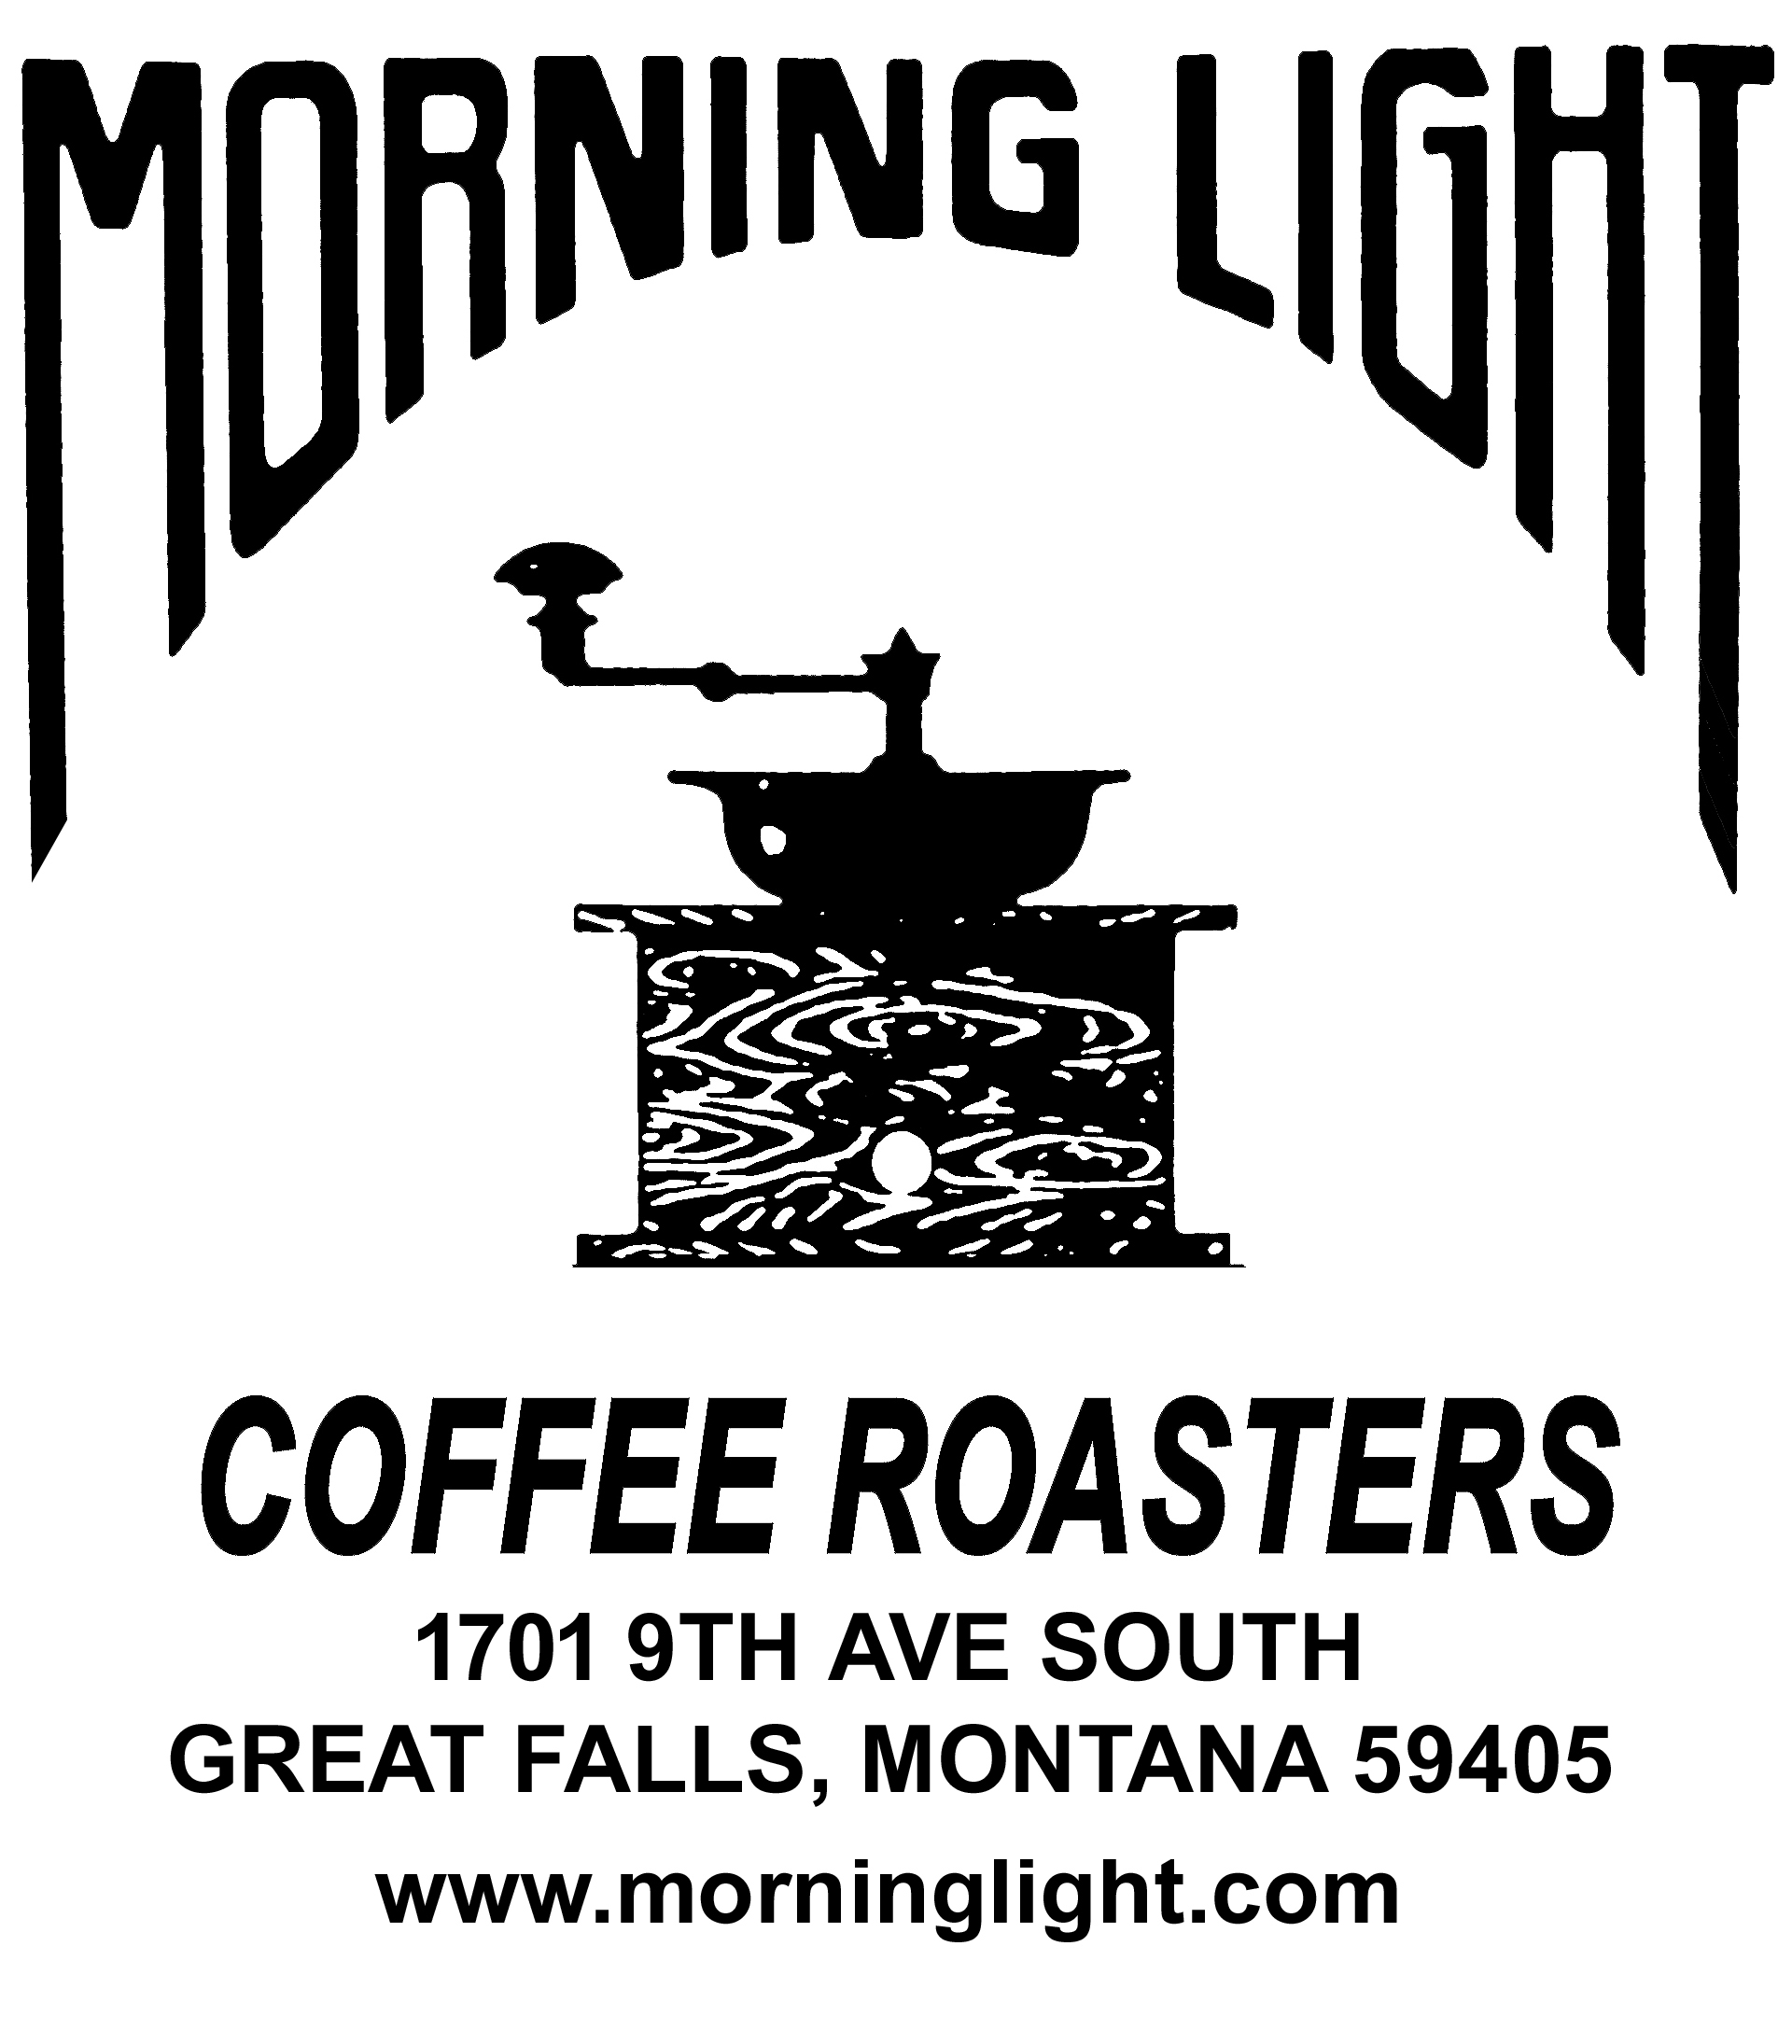 morning light logo